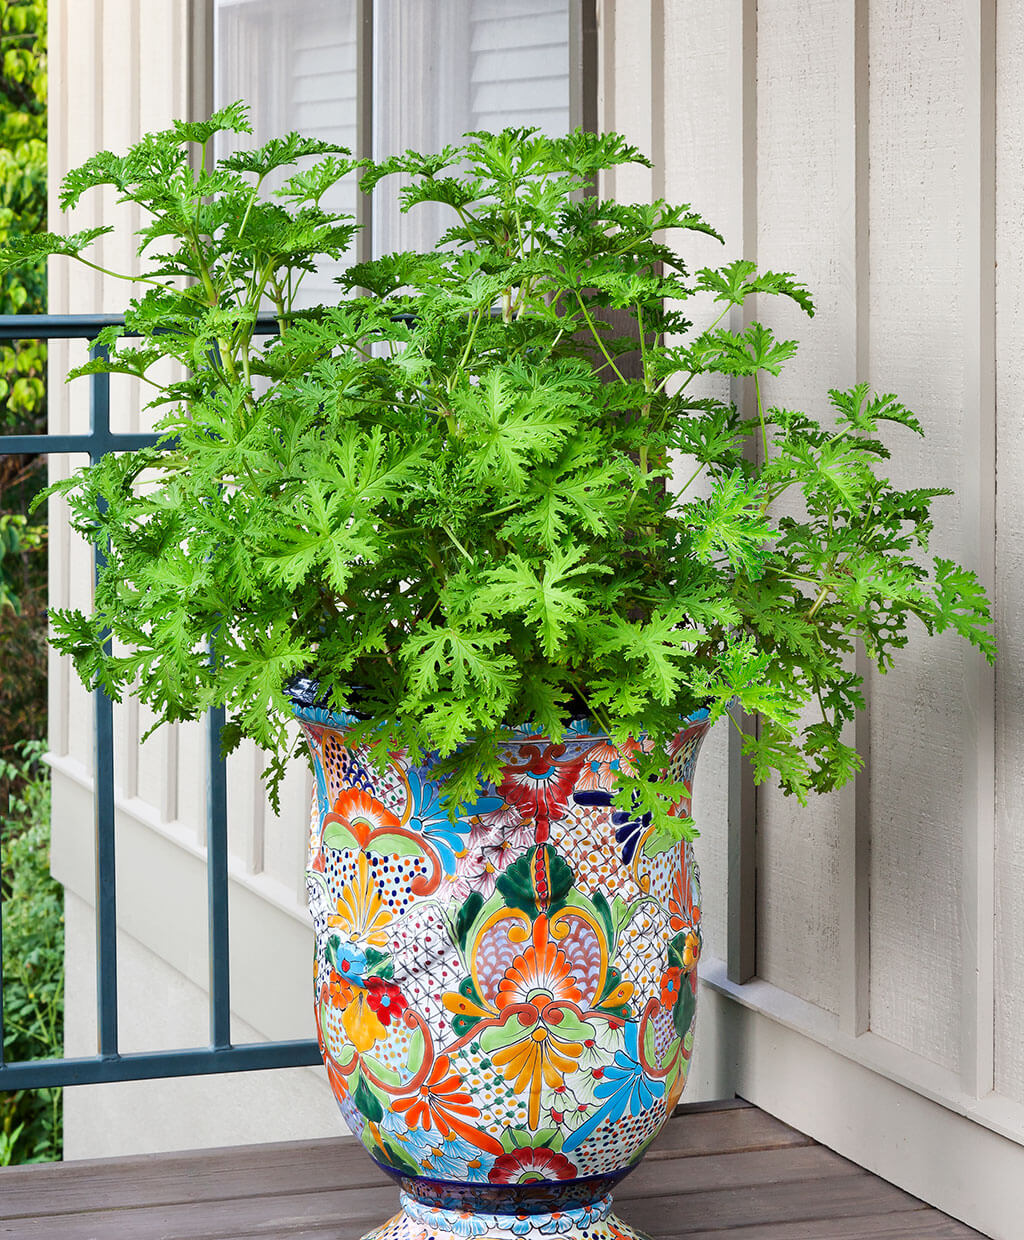 Growing Mosquito Repellent Plants